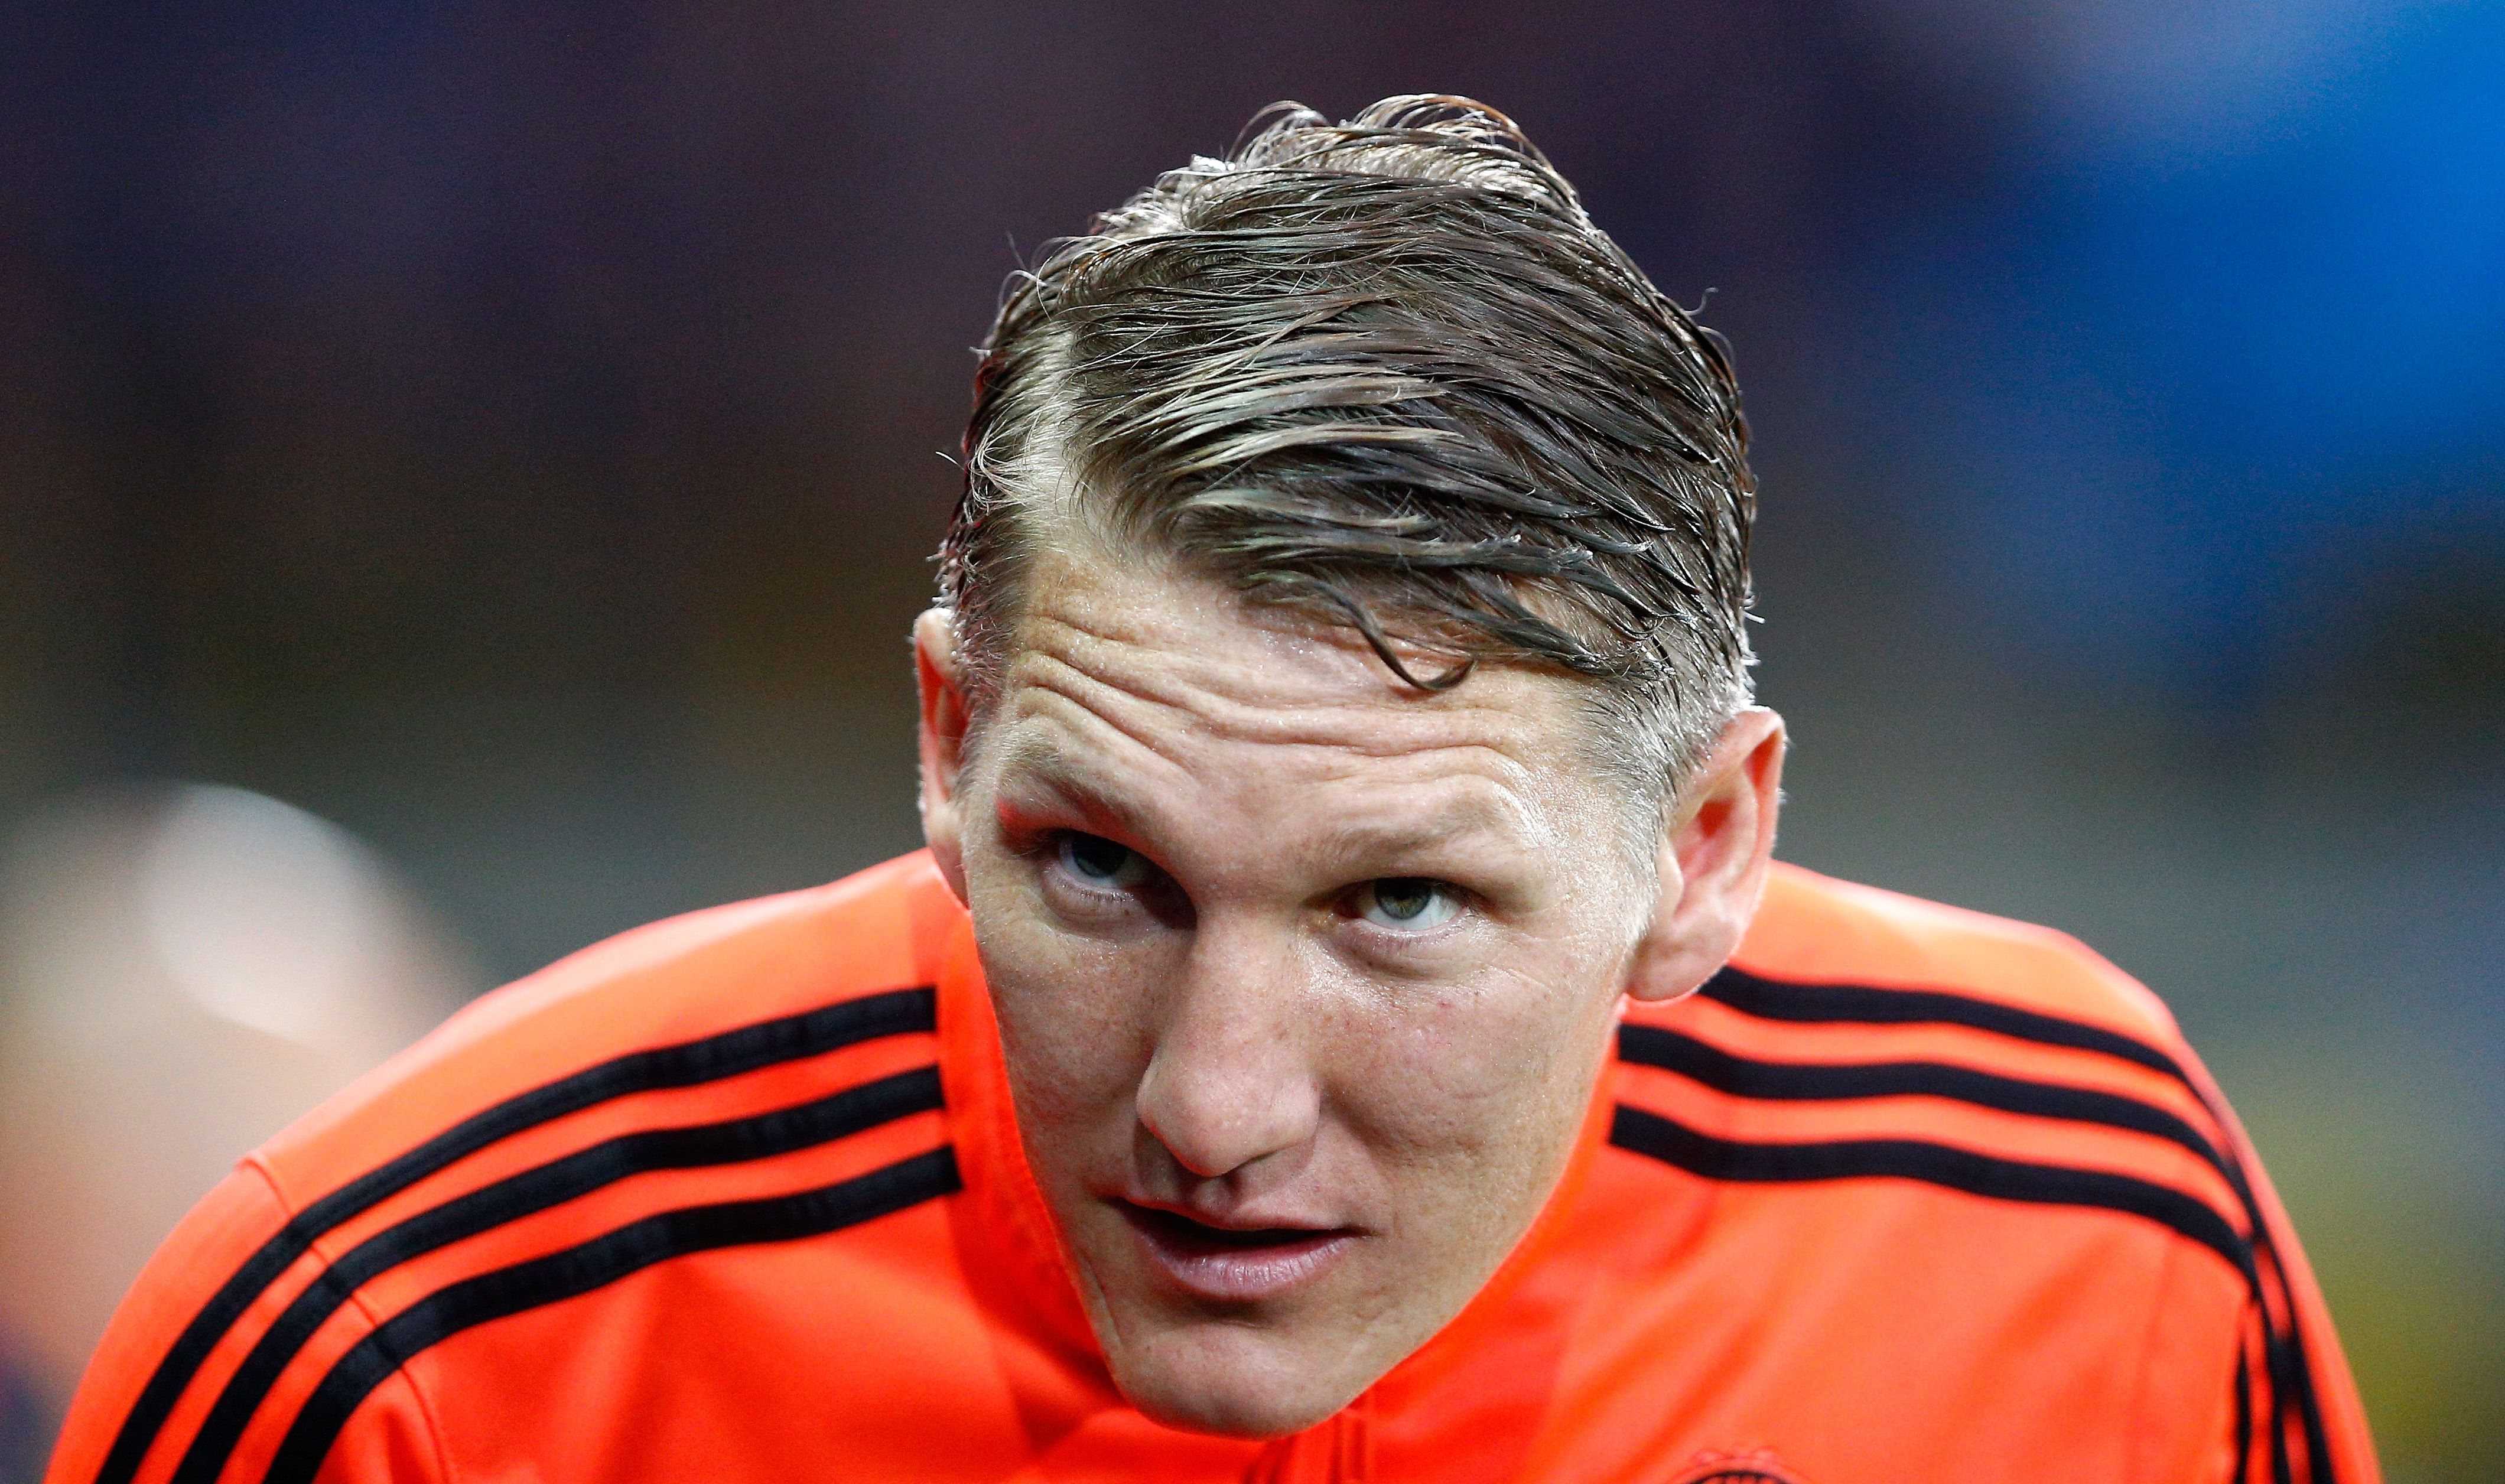 Bastian Schweinsteiger Rocking The Wet Look With A Perfect Parting Manutd Manchester United Coach Manchester United Players Manchester United